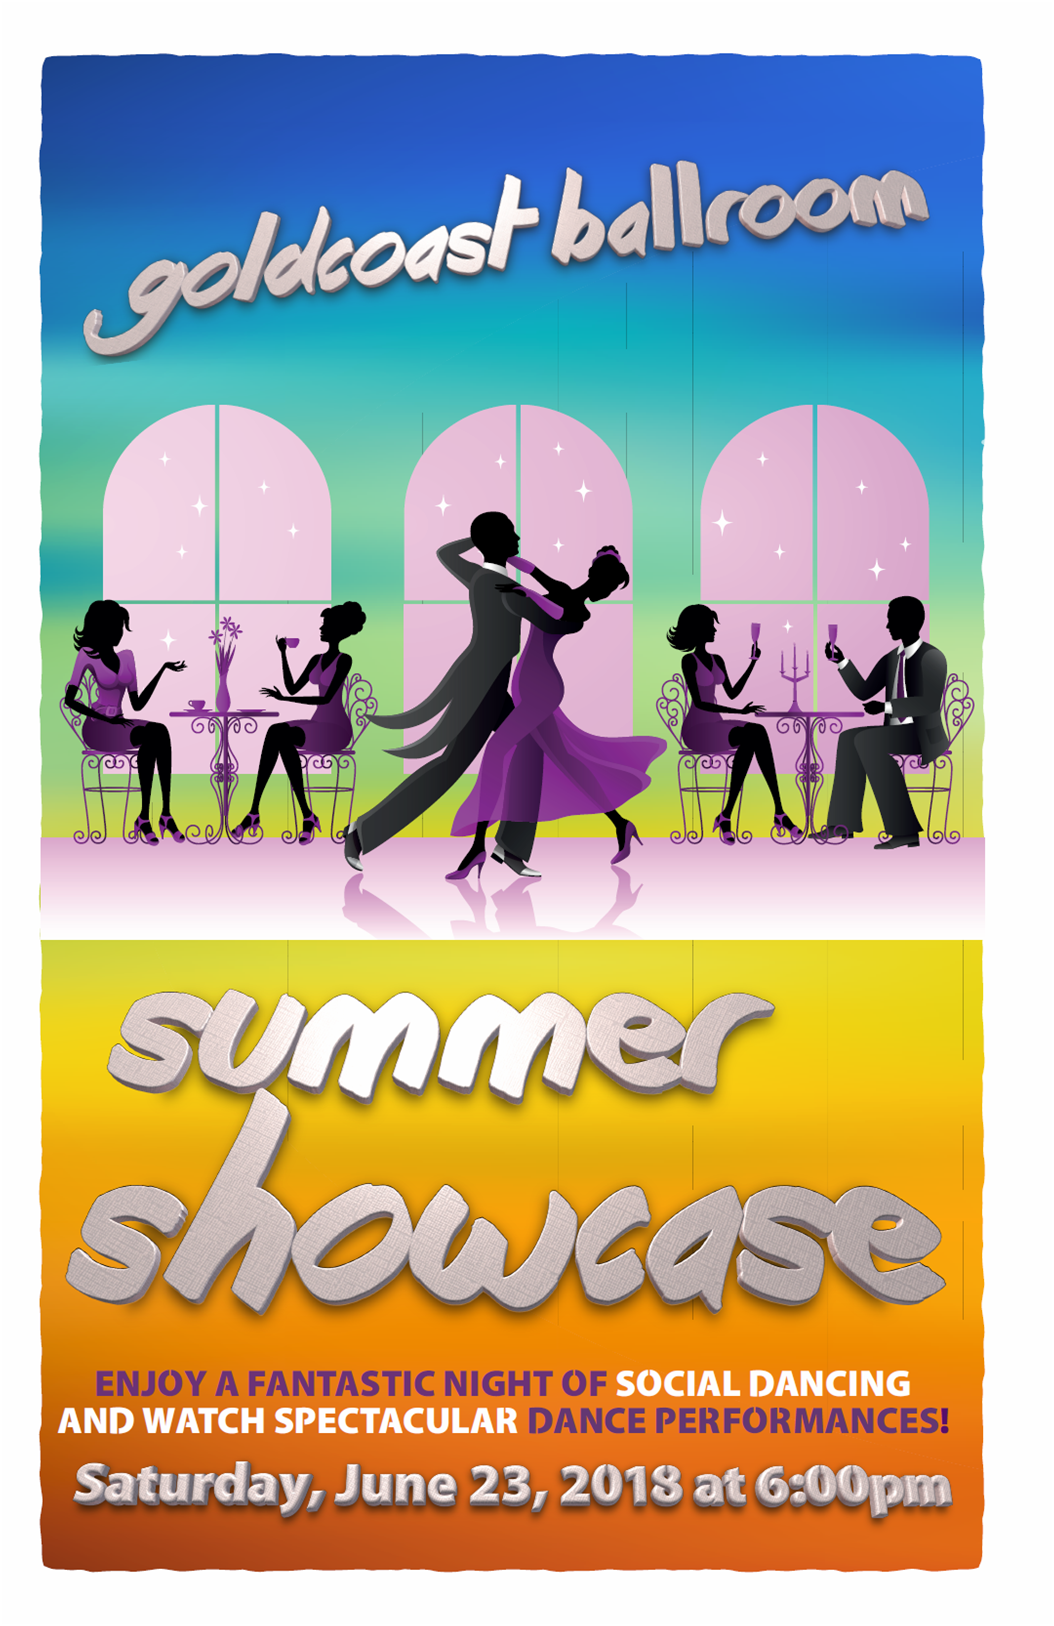 Goldcoast Ballroom Summer Showcase - June 23, 2018!